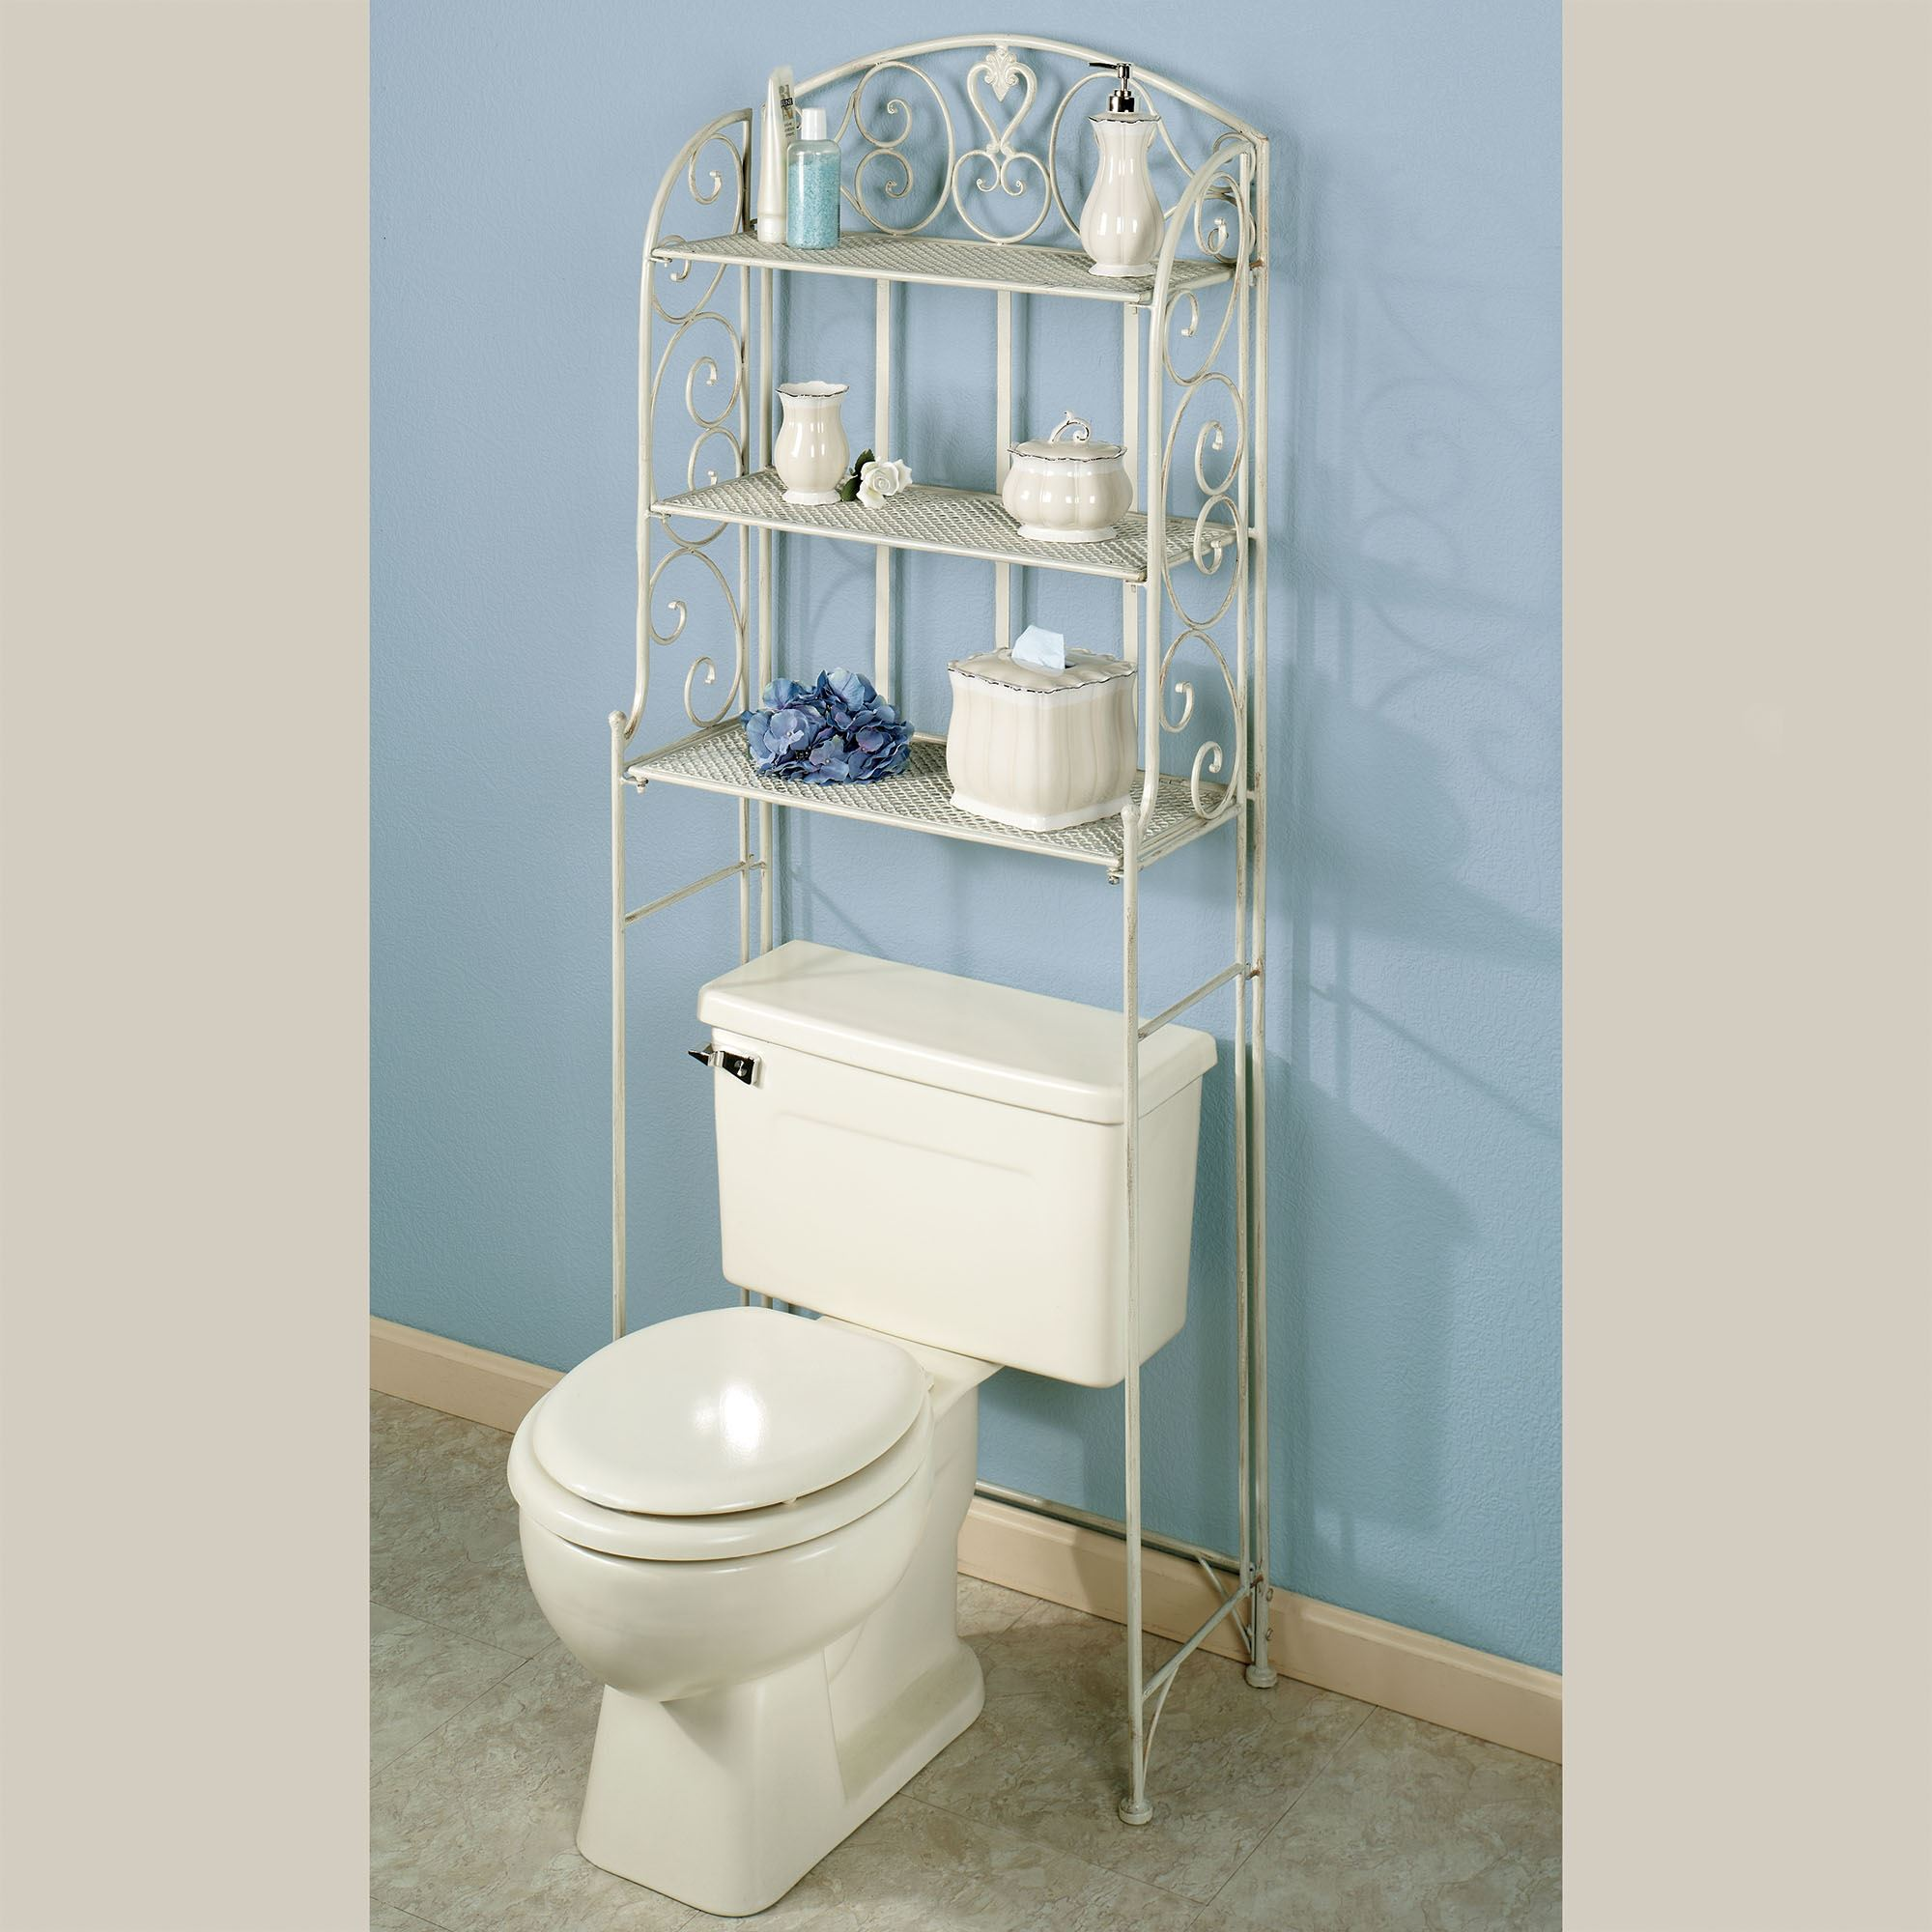 htm product shelf saver bathroom one savers over toilet rattan space the tank white p plastic